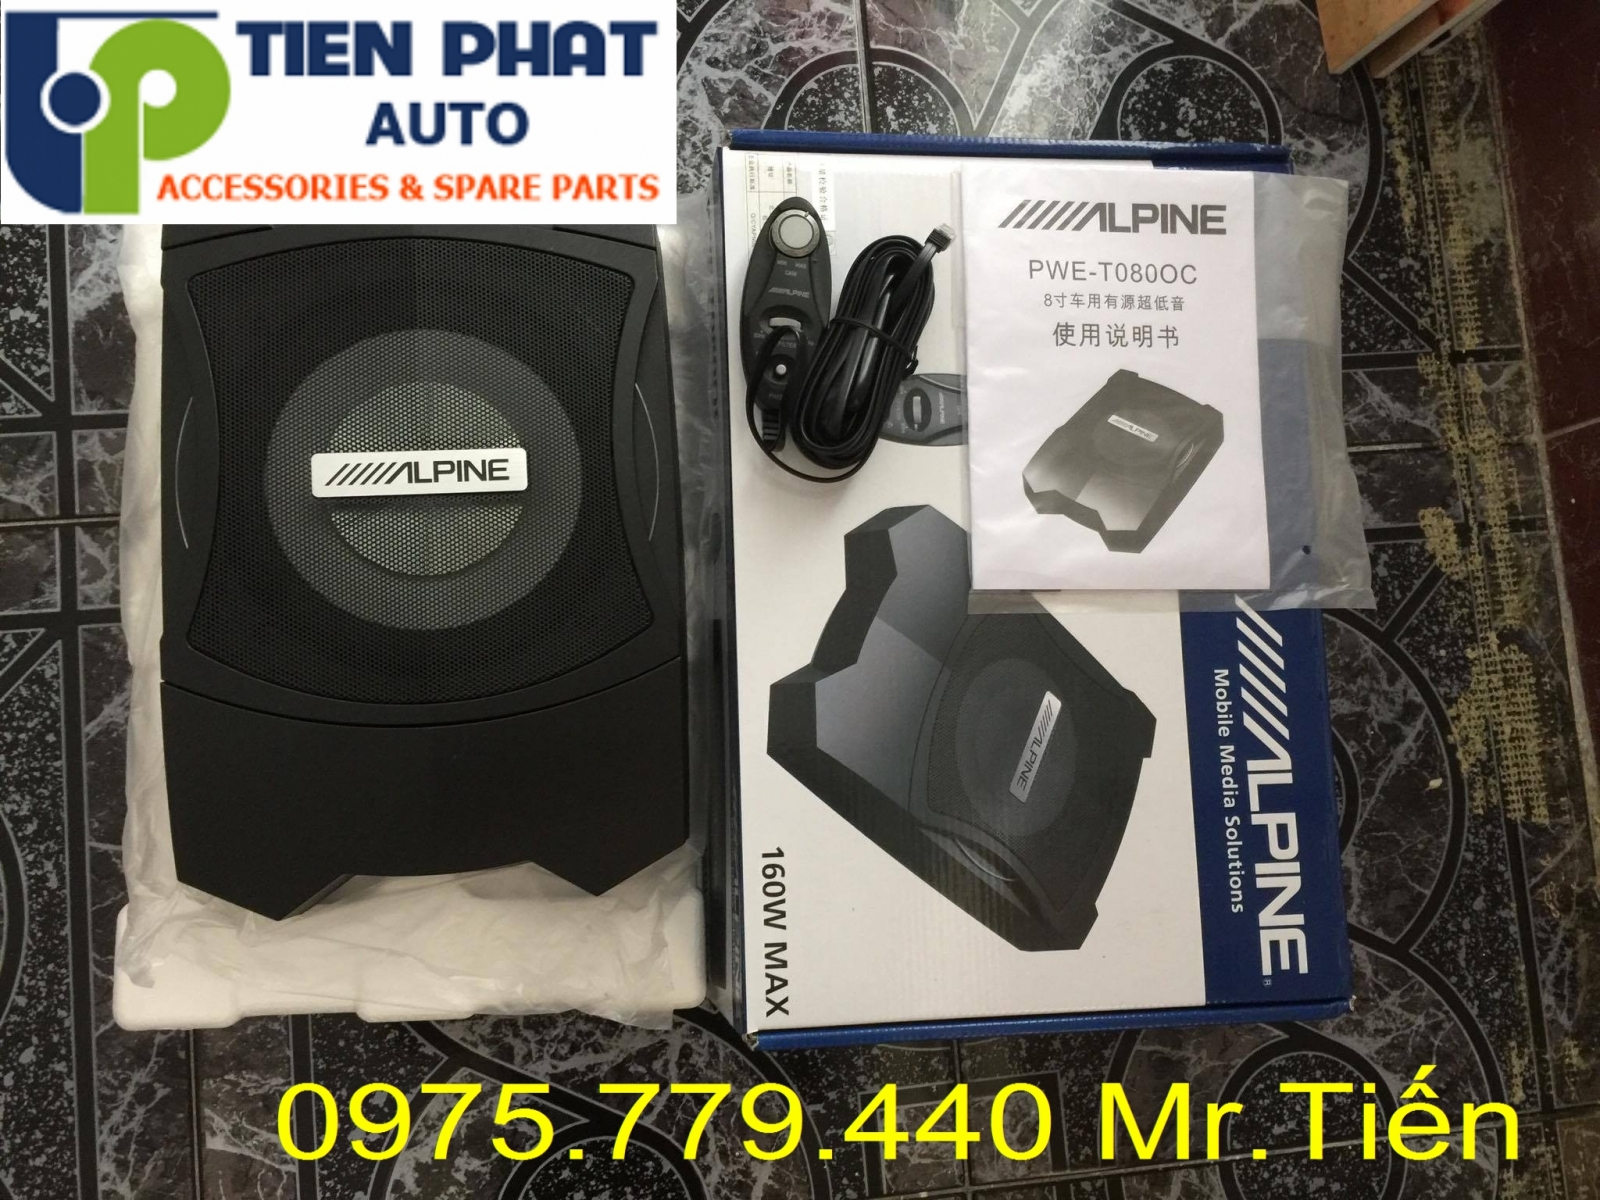 loa sub dien alpine pwe-t0800c am thanh hay chuan cho ford everest